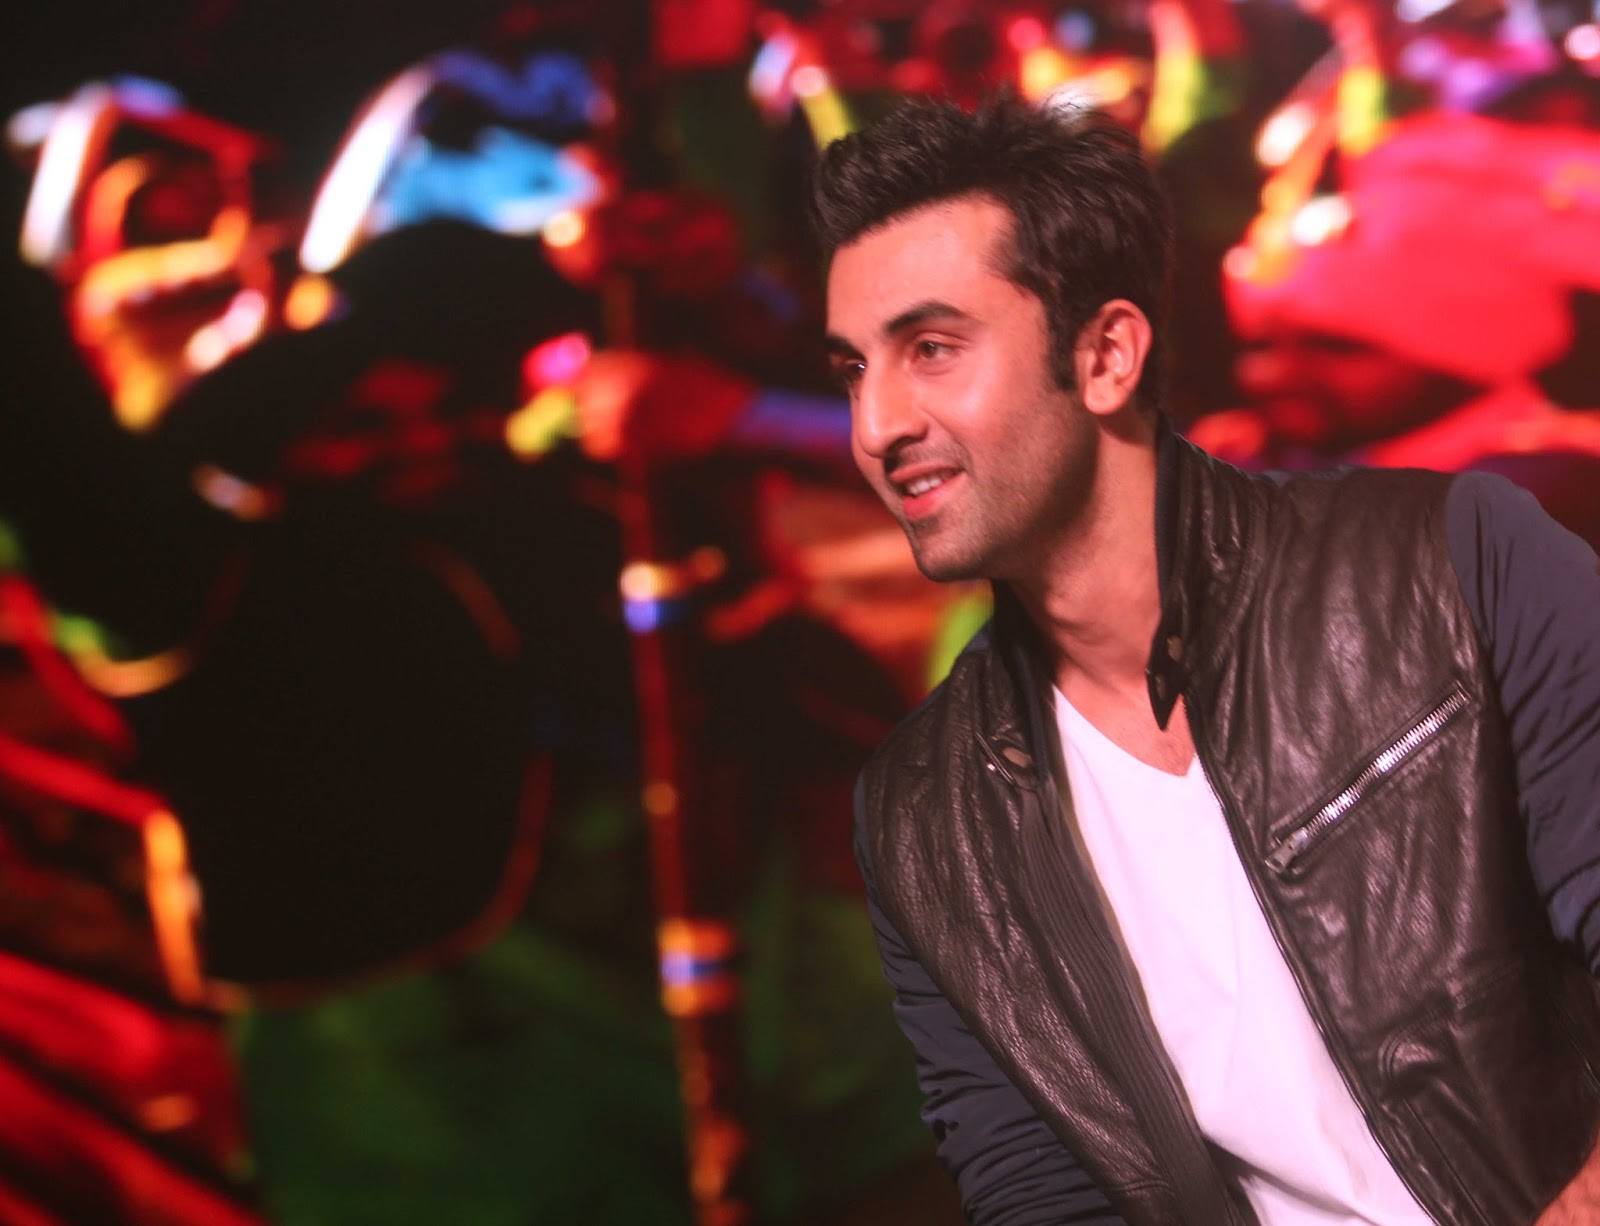 http://4.bp.blogspot.com/-FwXQxX2xHfA/UinBAJ16v4I/AAAAAAABiQc/CGuCIPnQBPk/s1600/Ranbir+Kapoor+at+the+launch+of+song+%2527Aare+Aare%2527+from+movie+%2527Besharam%2527+%252813%2529.JPG